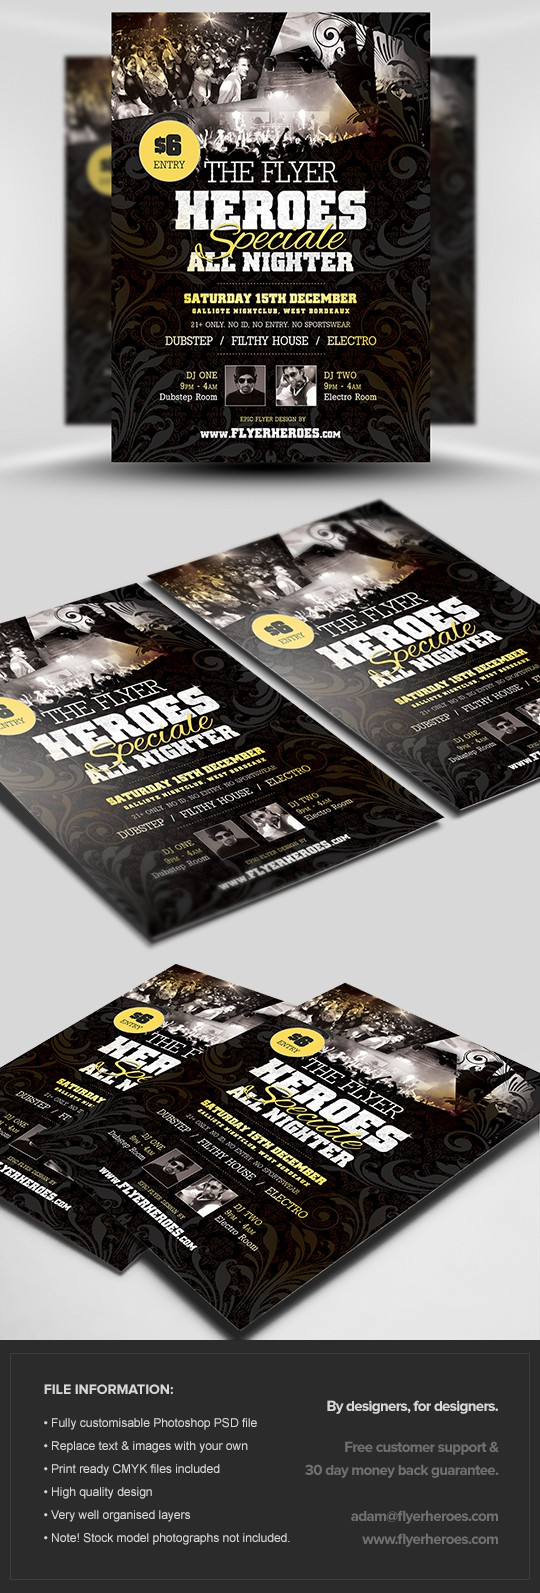 Heroes Special Party Flyer Template